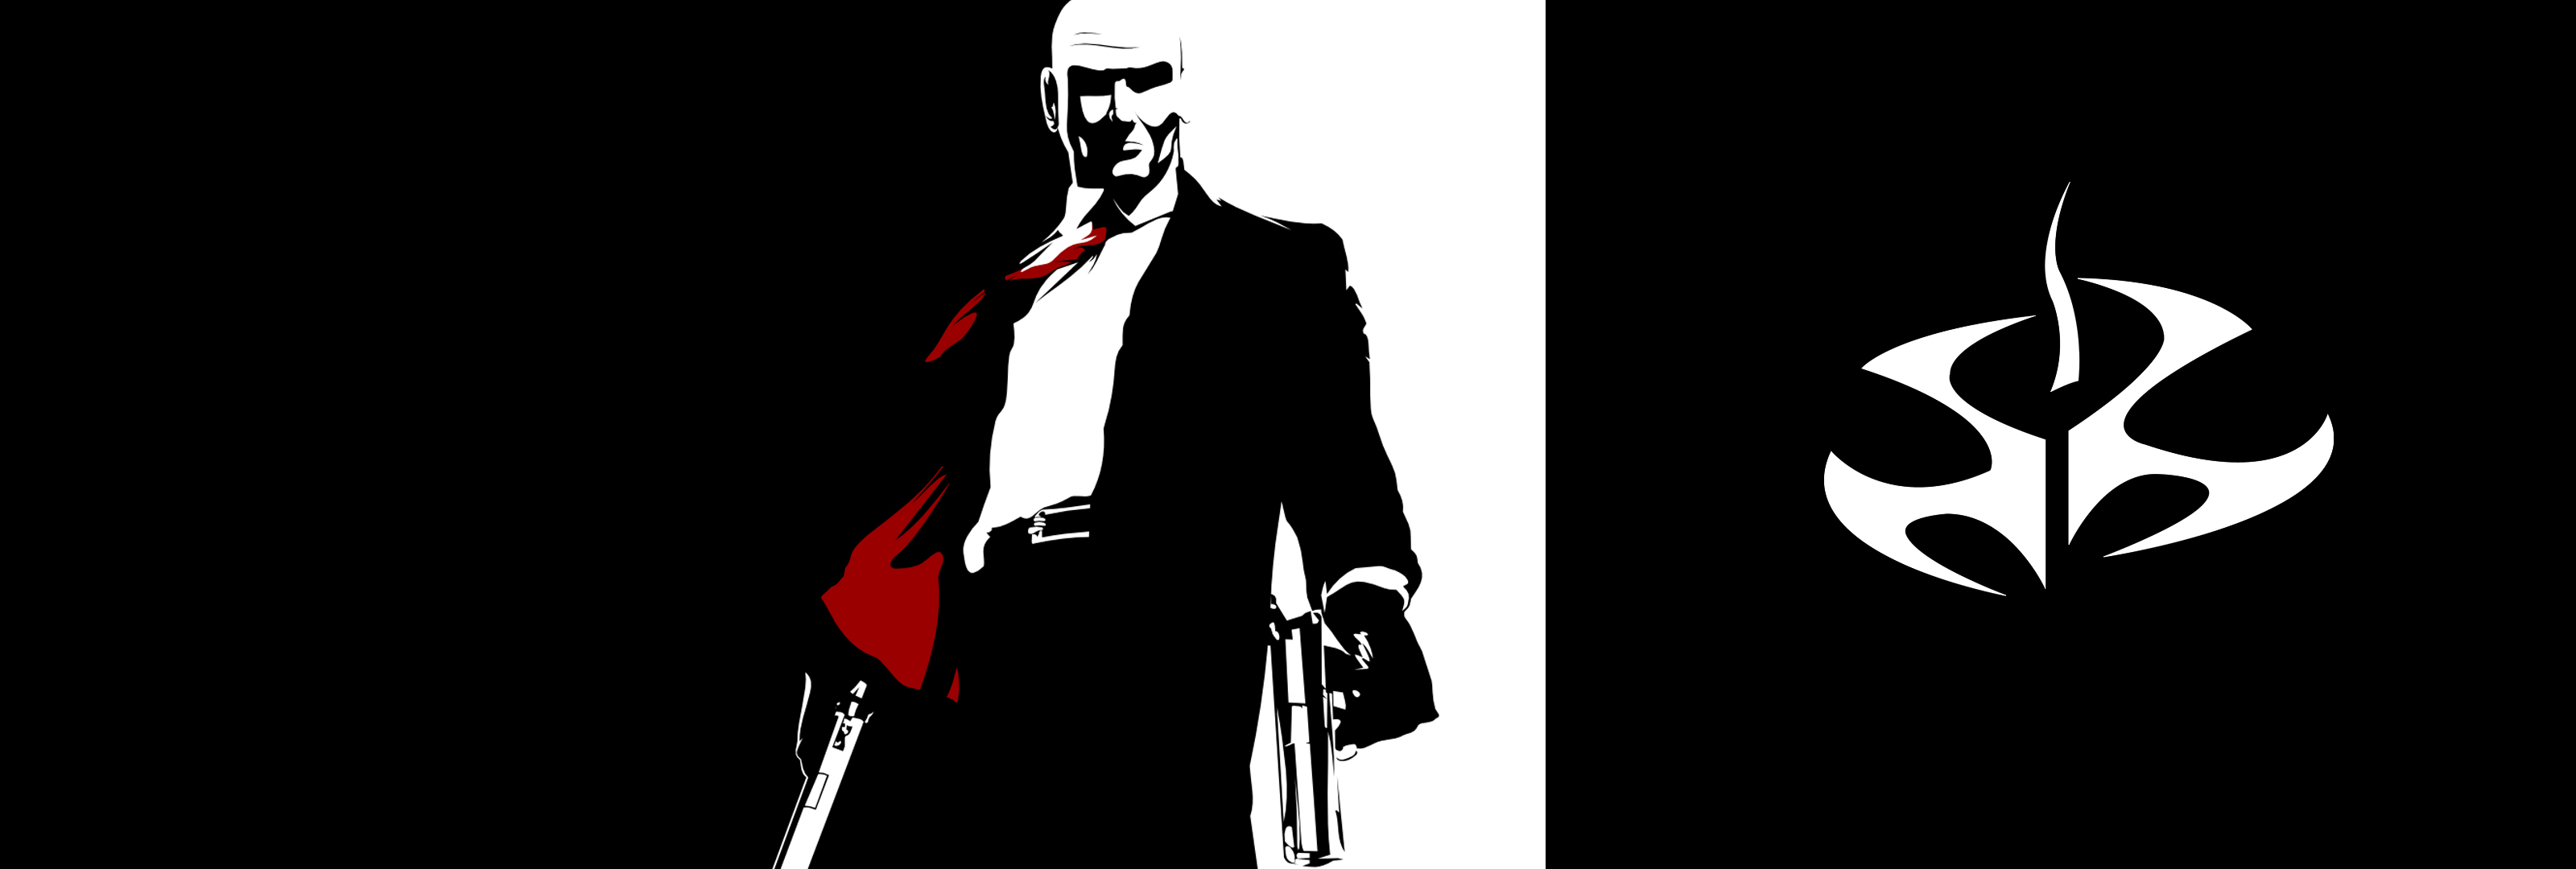 hitman full hd wallpaper and background image | 3200x1080 | id:666461